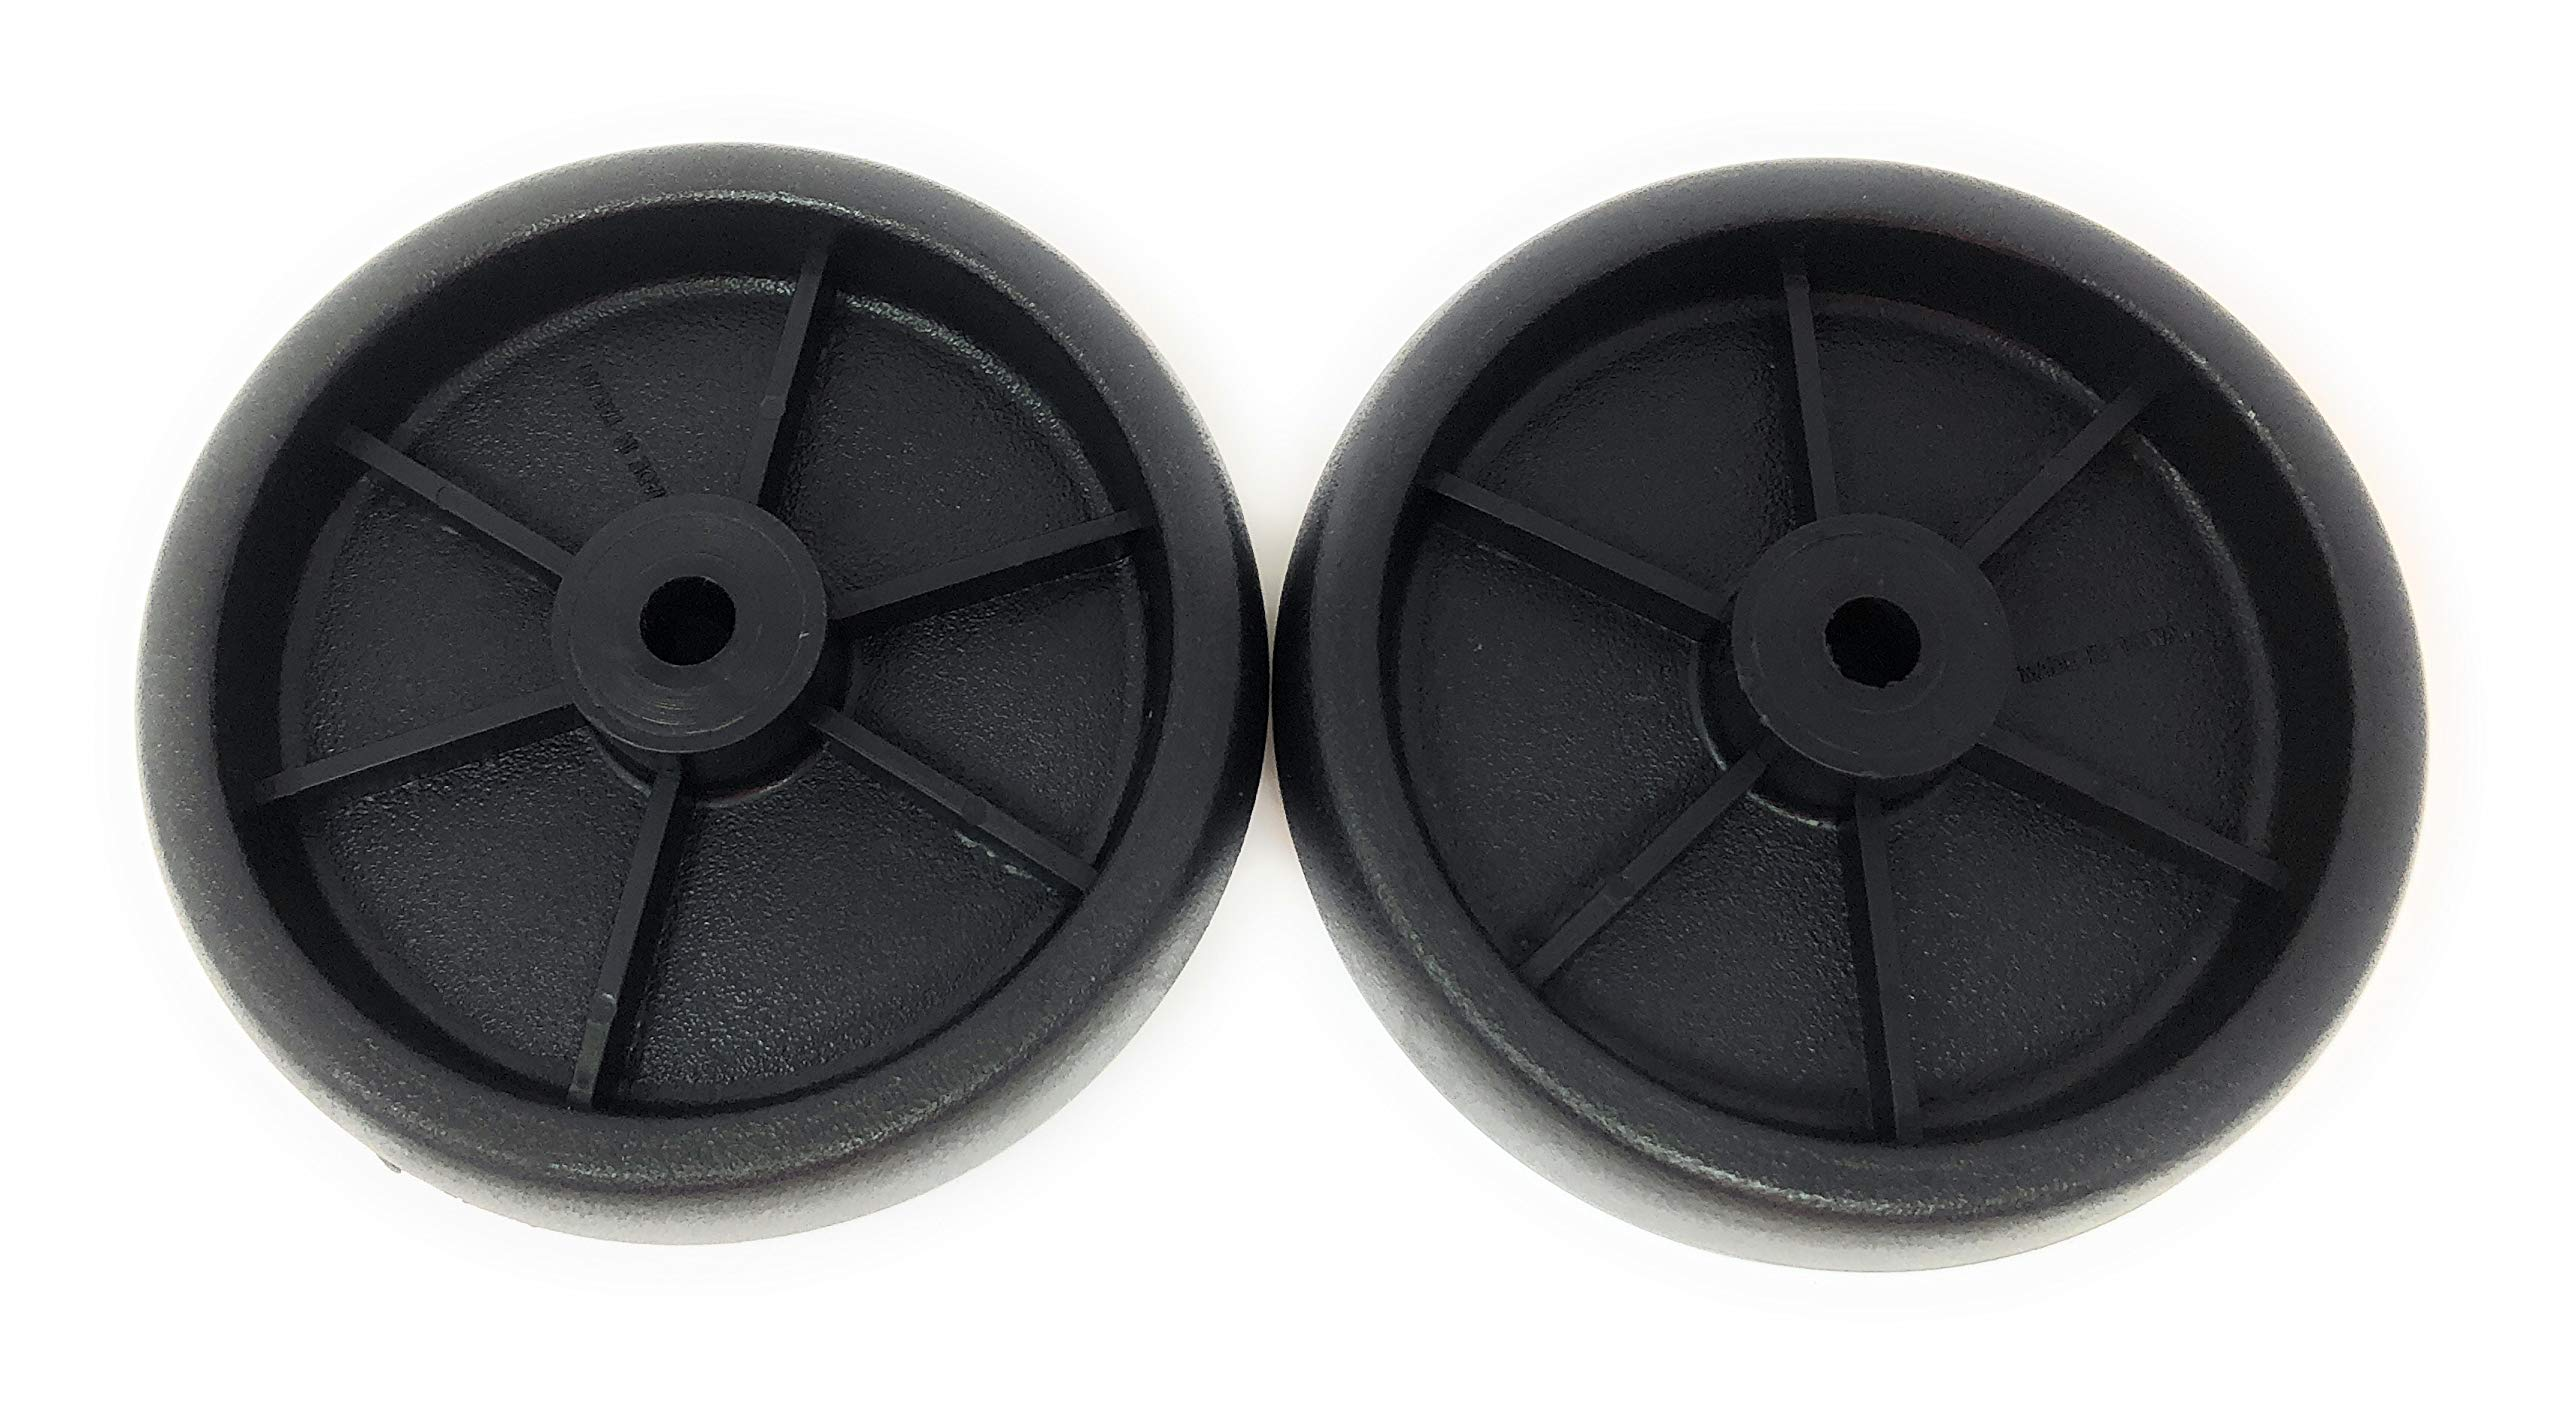 "Nickanny's Set Of 2 Replacement BBQ Grill Wheels Pair Set Kit-Solid Plastic Wheel 5"" x 1.5"" w/ 3/8"" Axle Hole for Outdoor Charcoal Gas Smoker Barbecue Pit- Rueda and Llantas Parts"